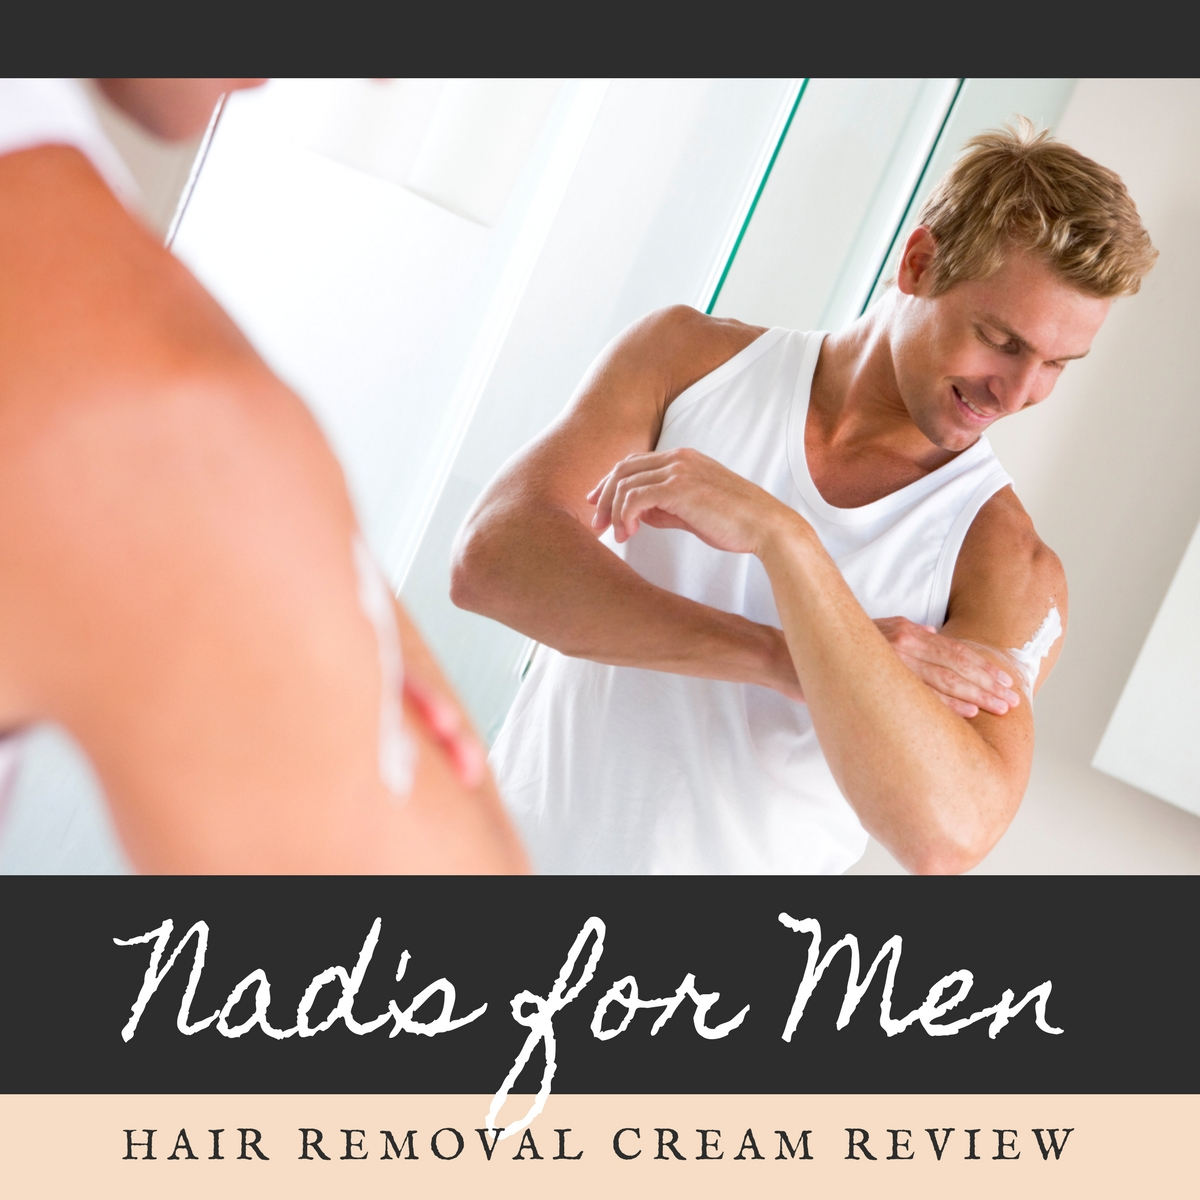 Nad S For Men Hair Removal Cream Review Hairly There